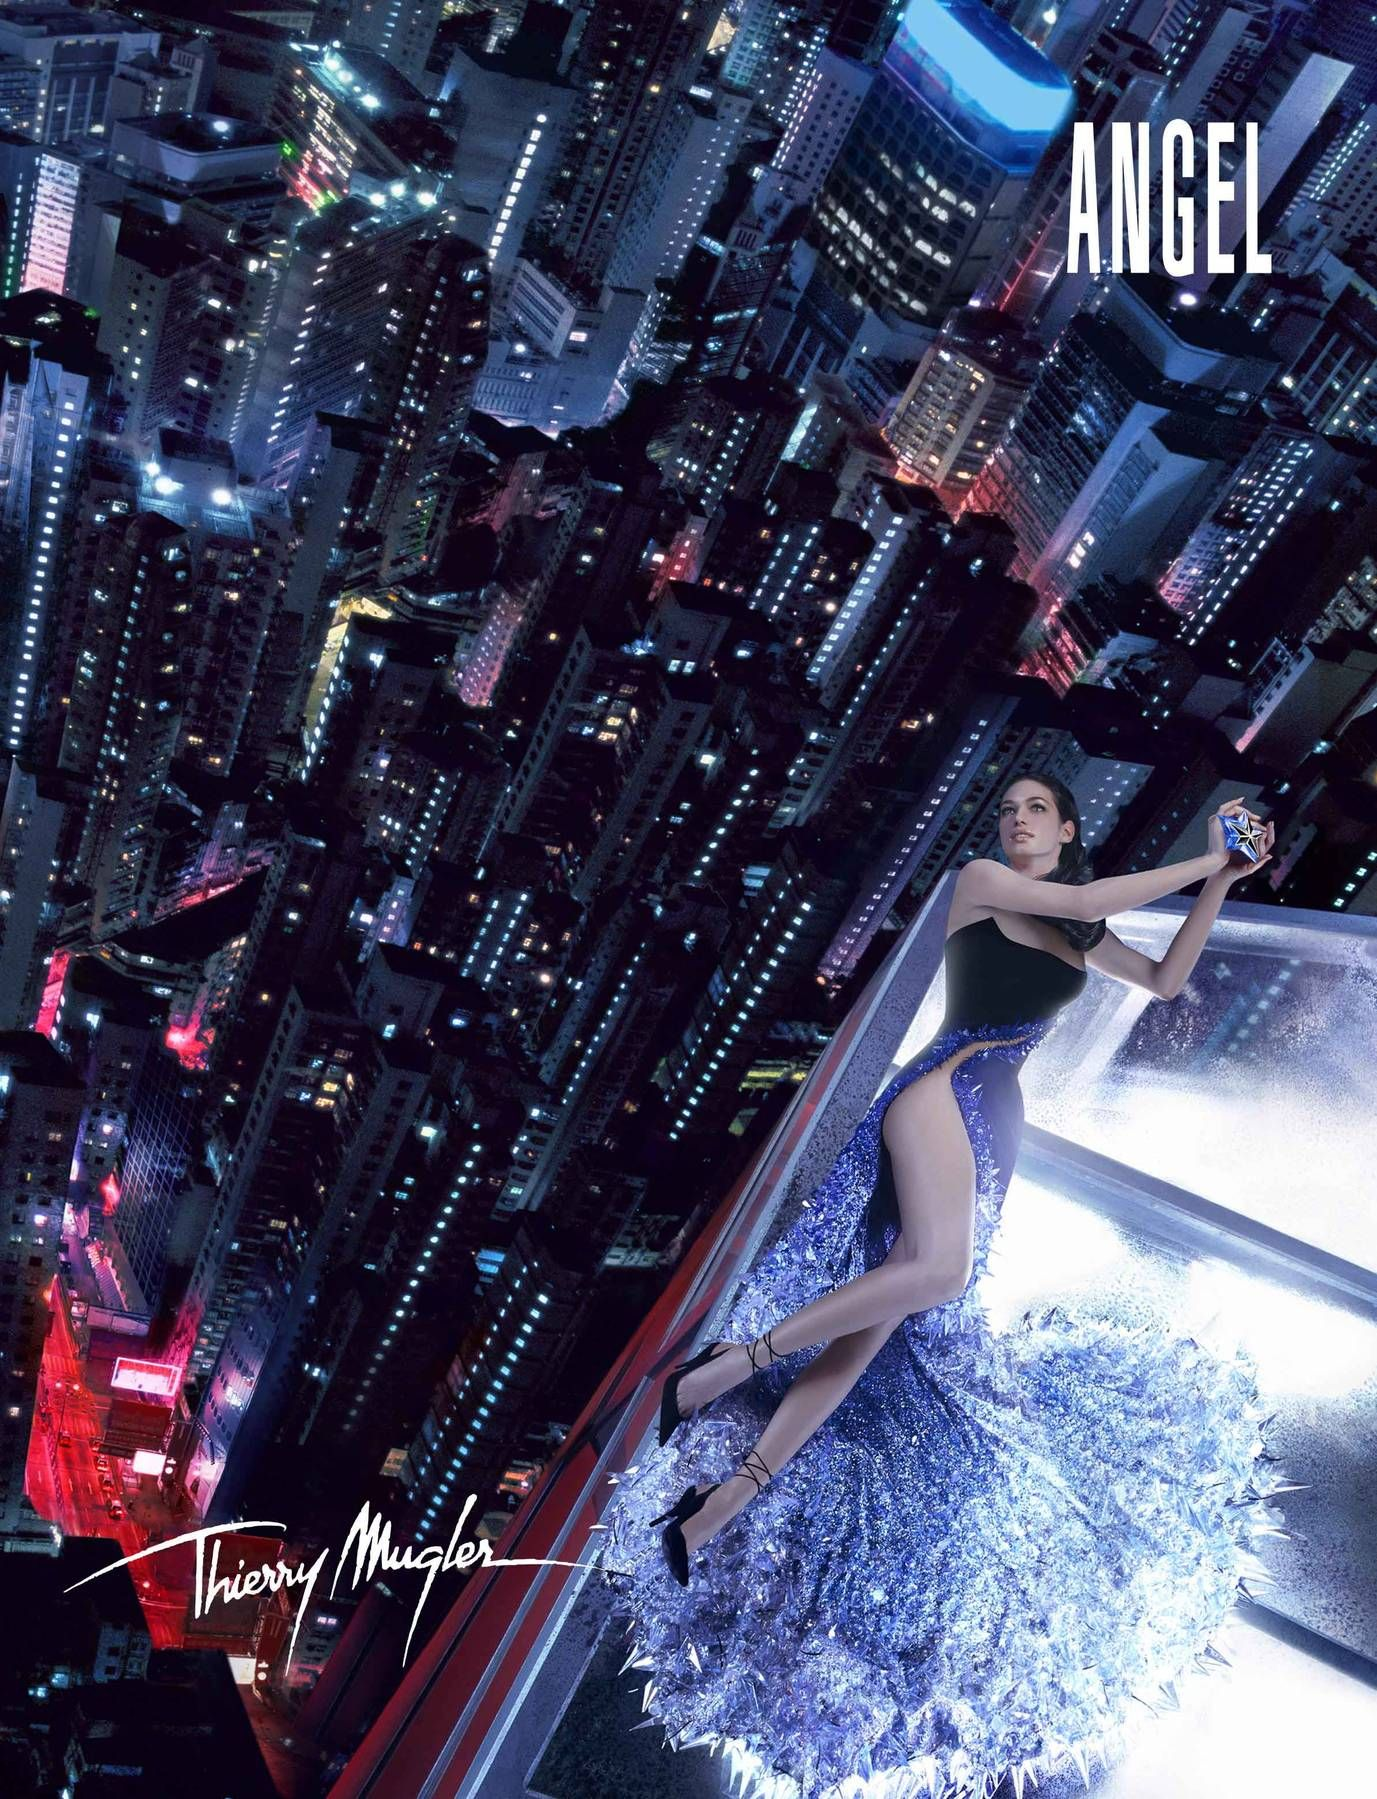 The Secrets Behind Thierry Muglers Iconic Angel Ad Campaigns My